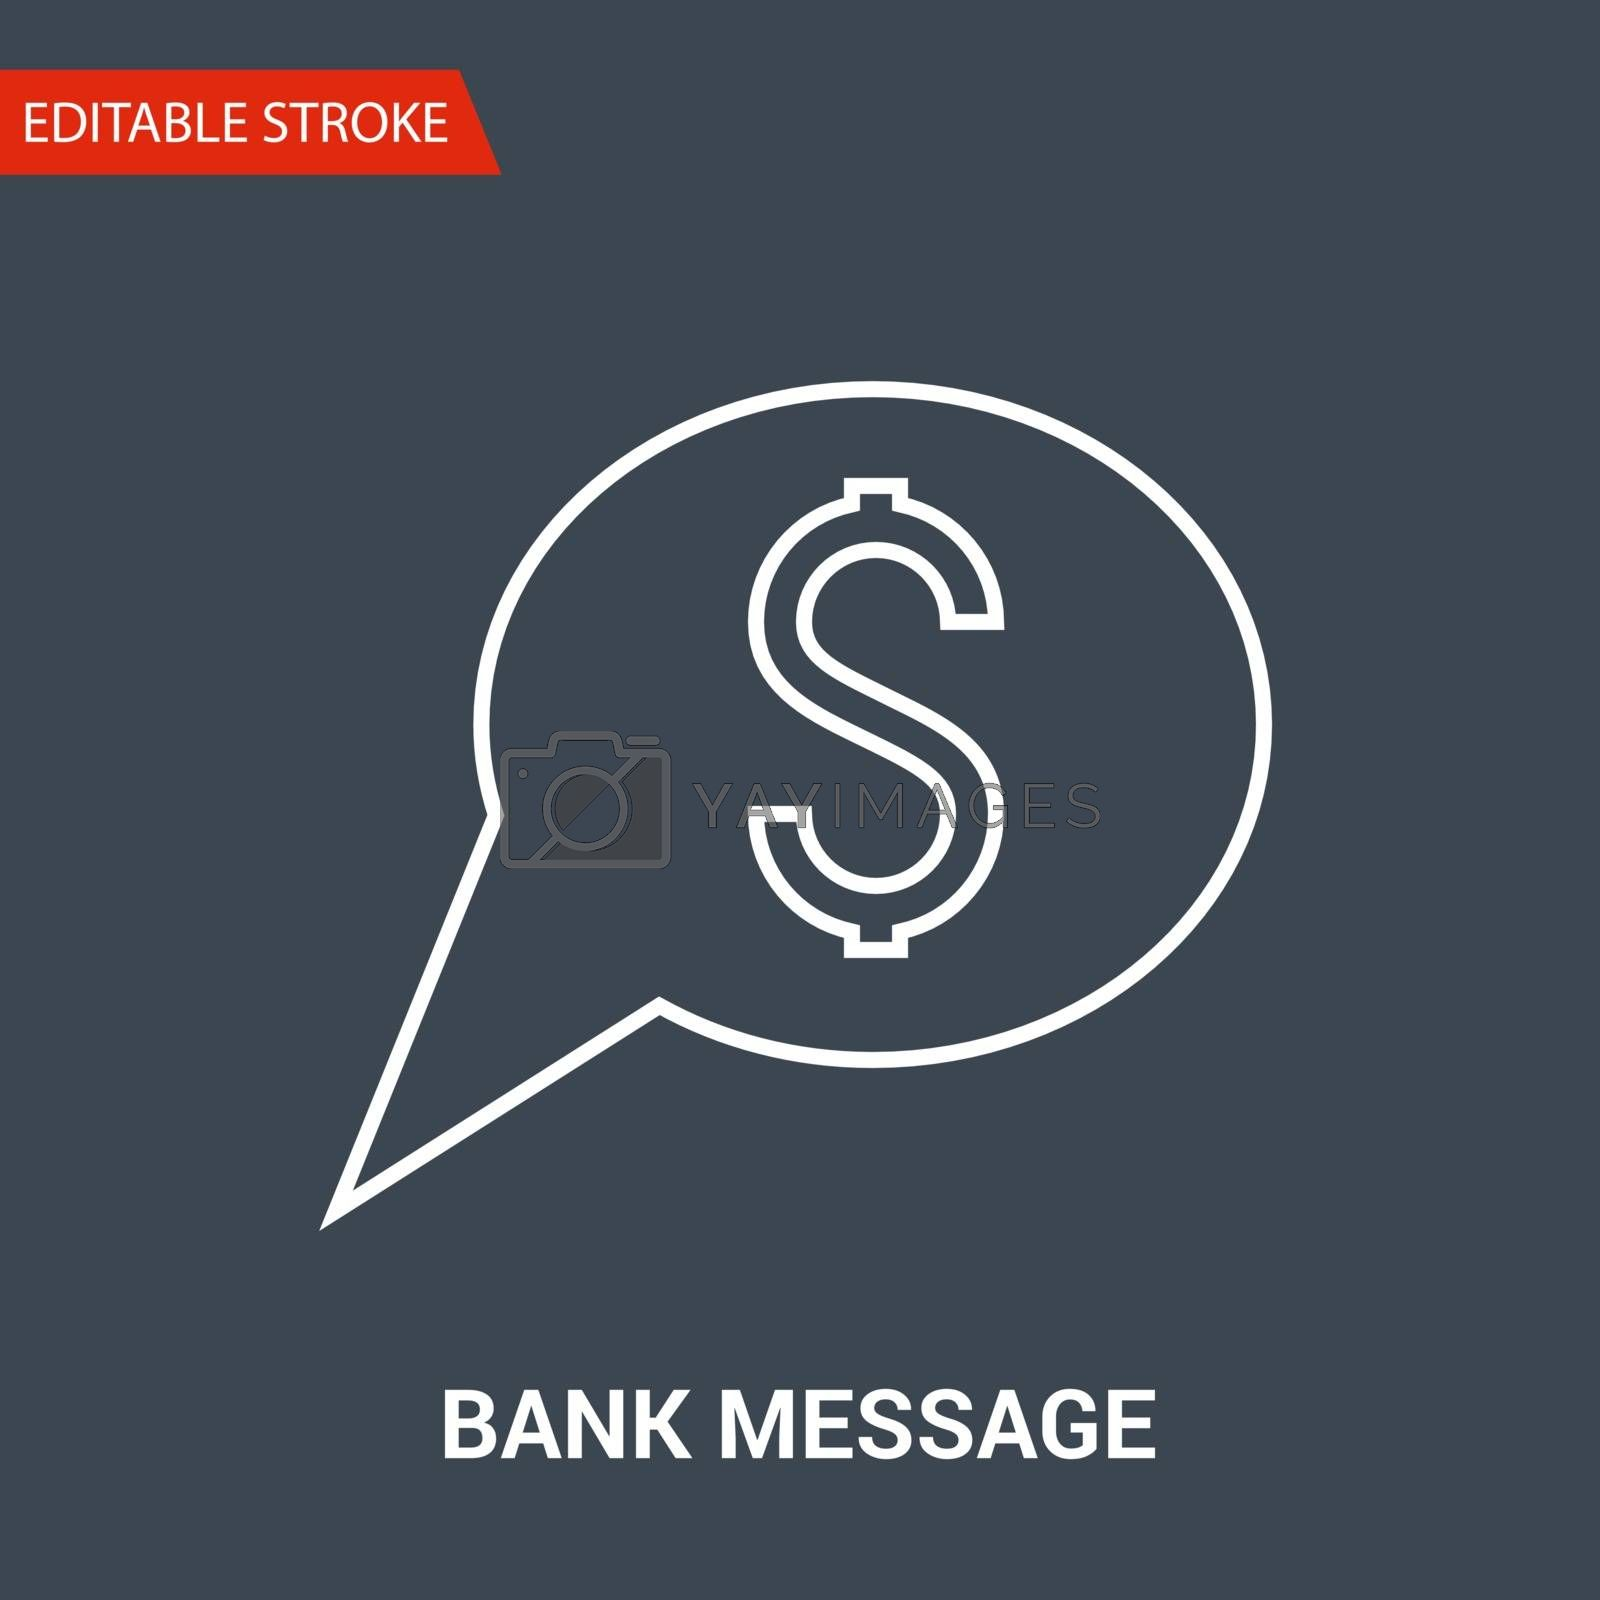 Bank Message Icon. Thin Line Vector Illustration - Adjust stroke weight - Expand to any Size - Easy Change Colour - Editable Stroke